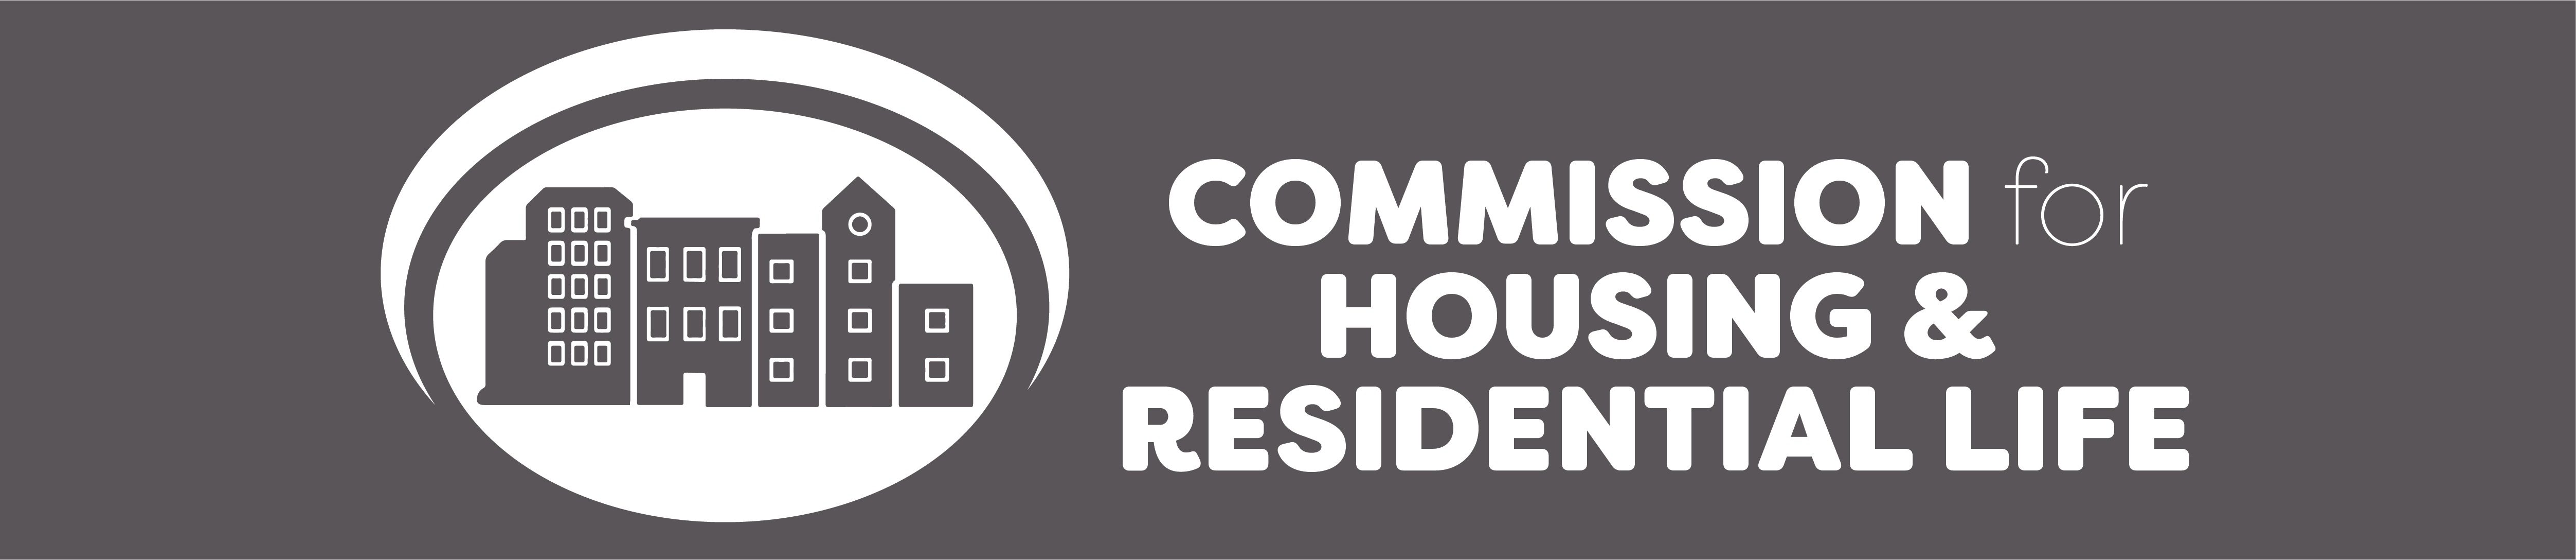 COMMISSION FOR HOUSING & RESIDENTIAL LIFE